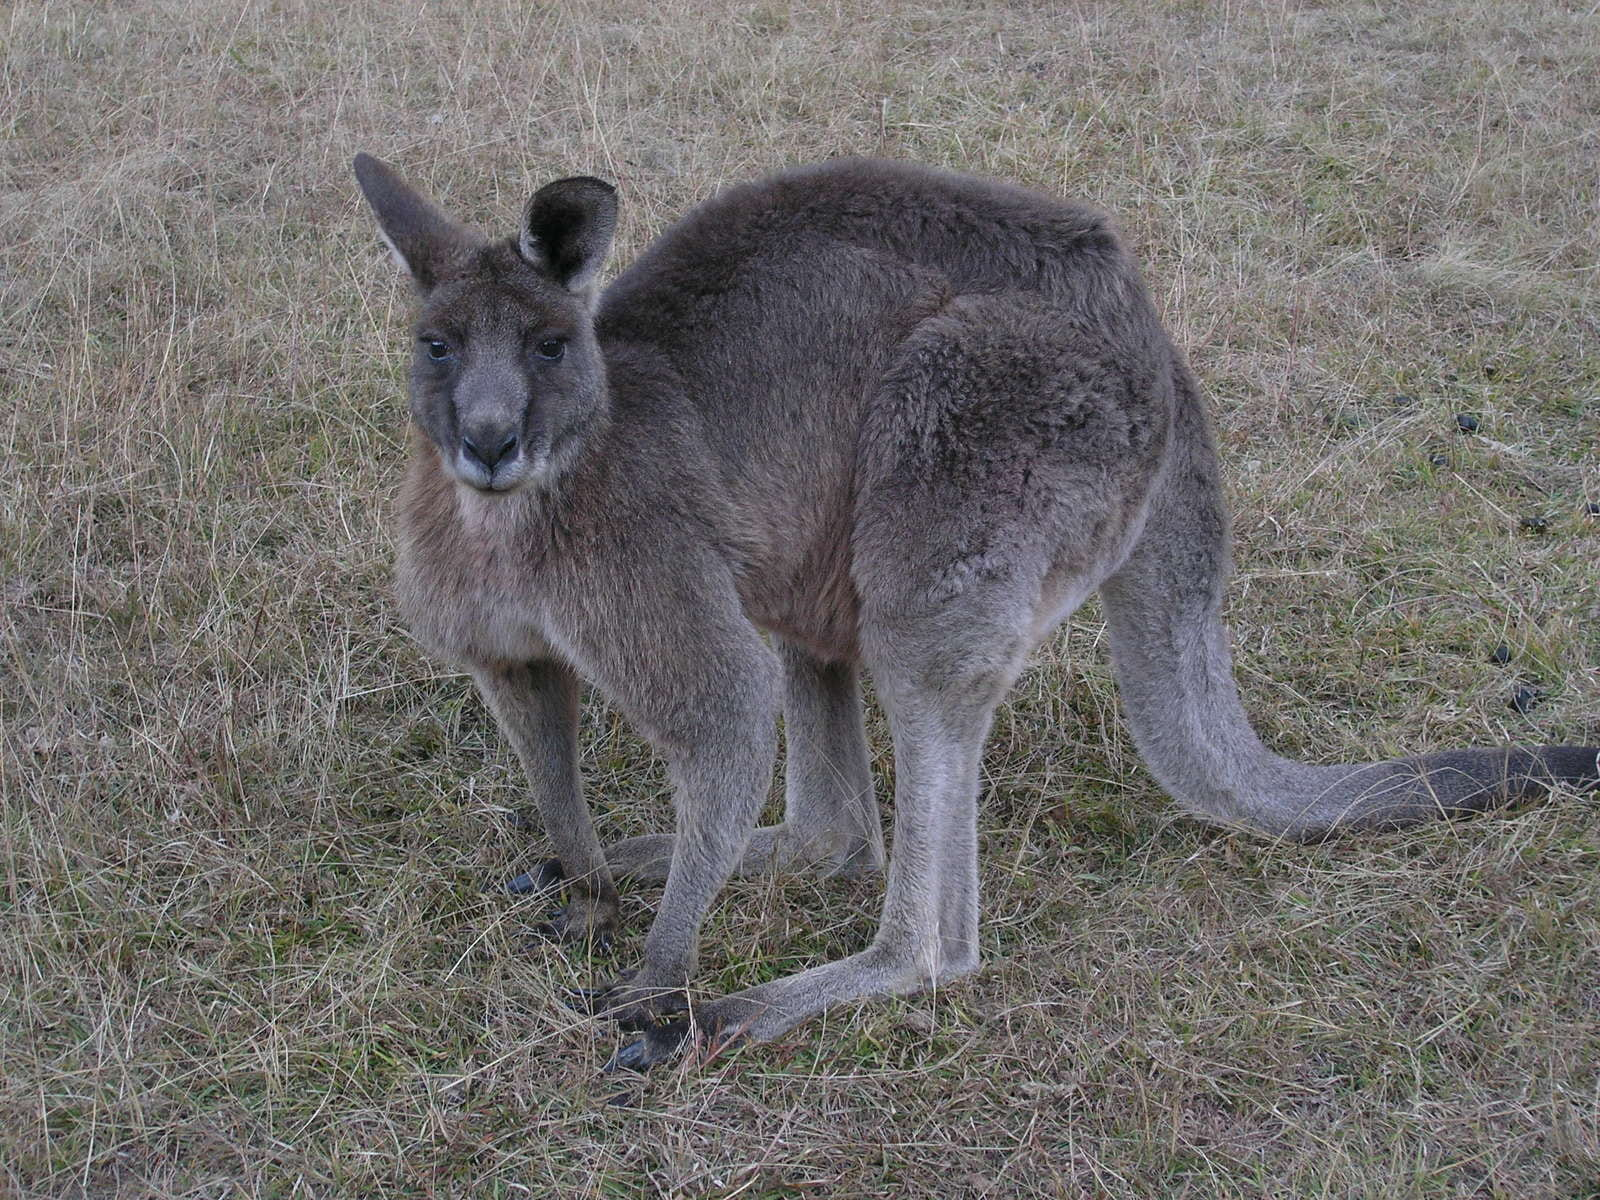 a photograph of the full body of an adult kangaroo with brownish-gray fur. The kangaroo is looking directly at the camera in a hunched over position.